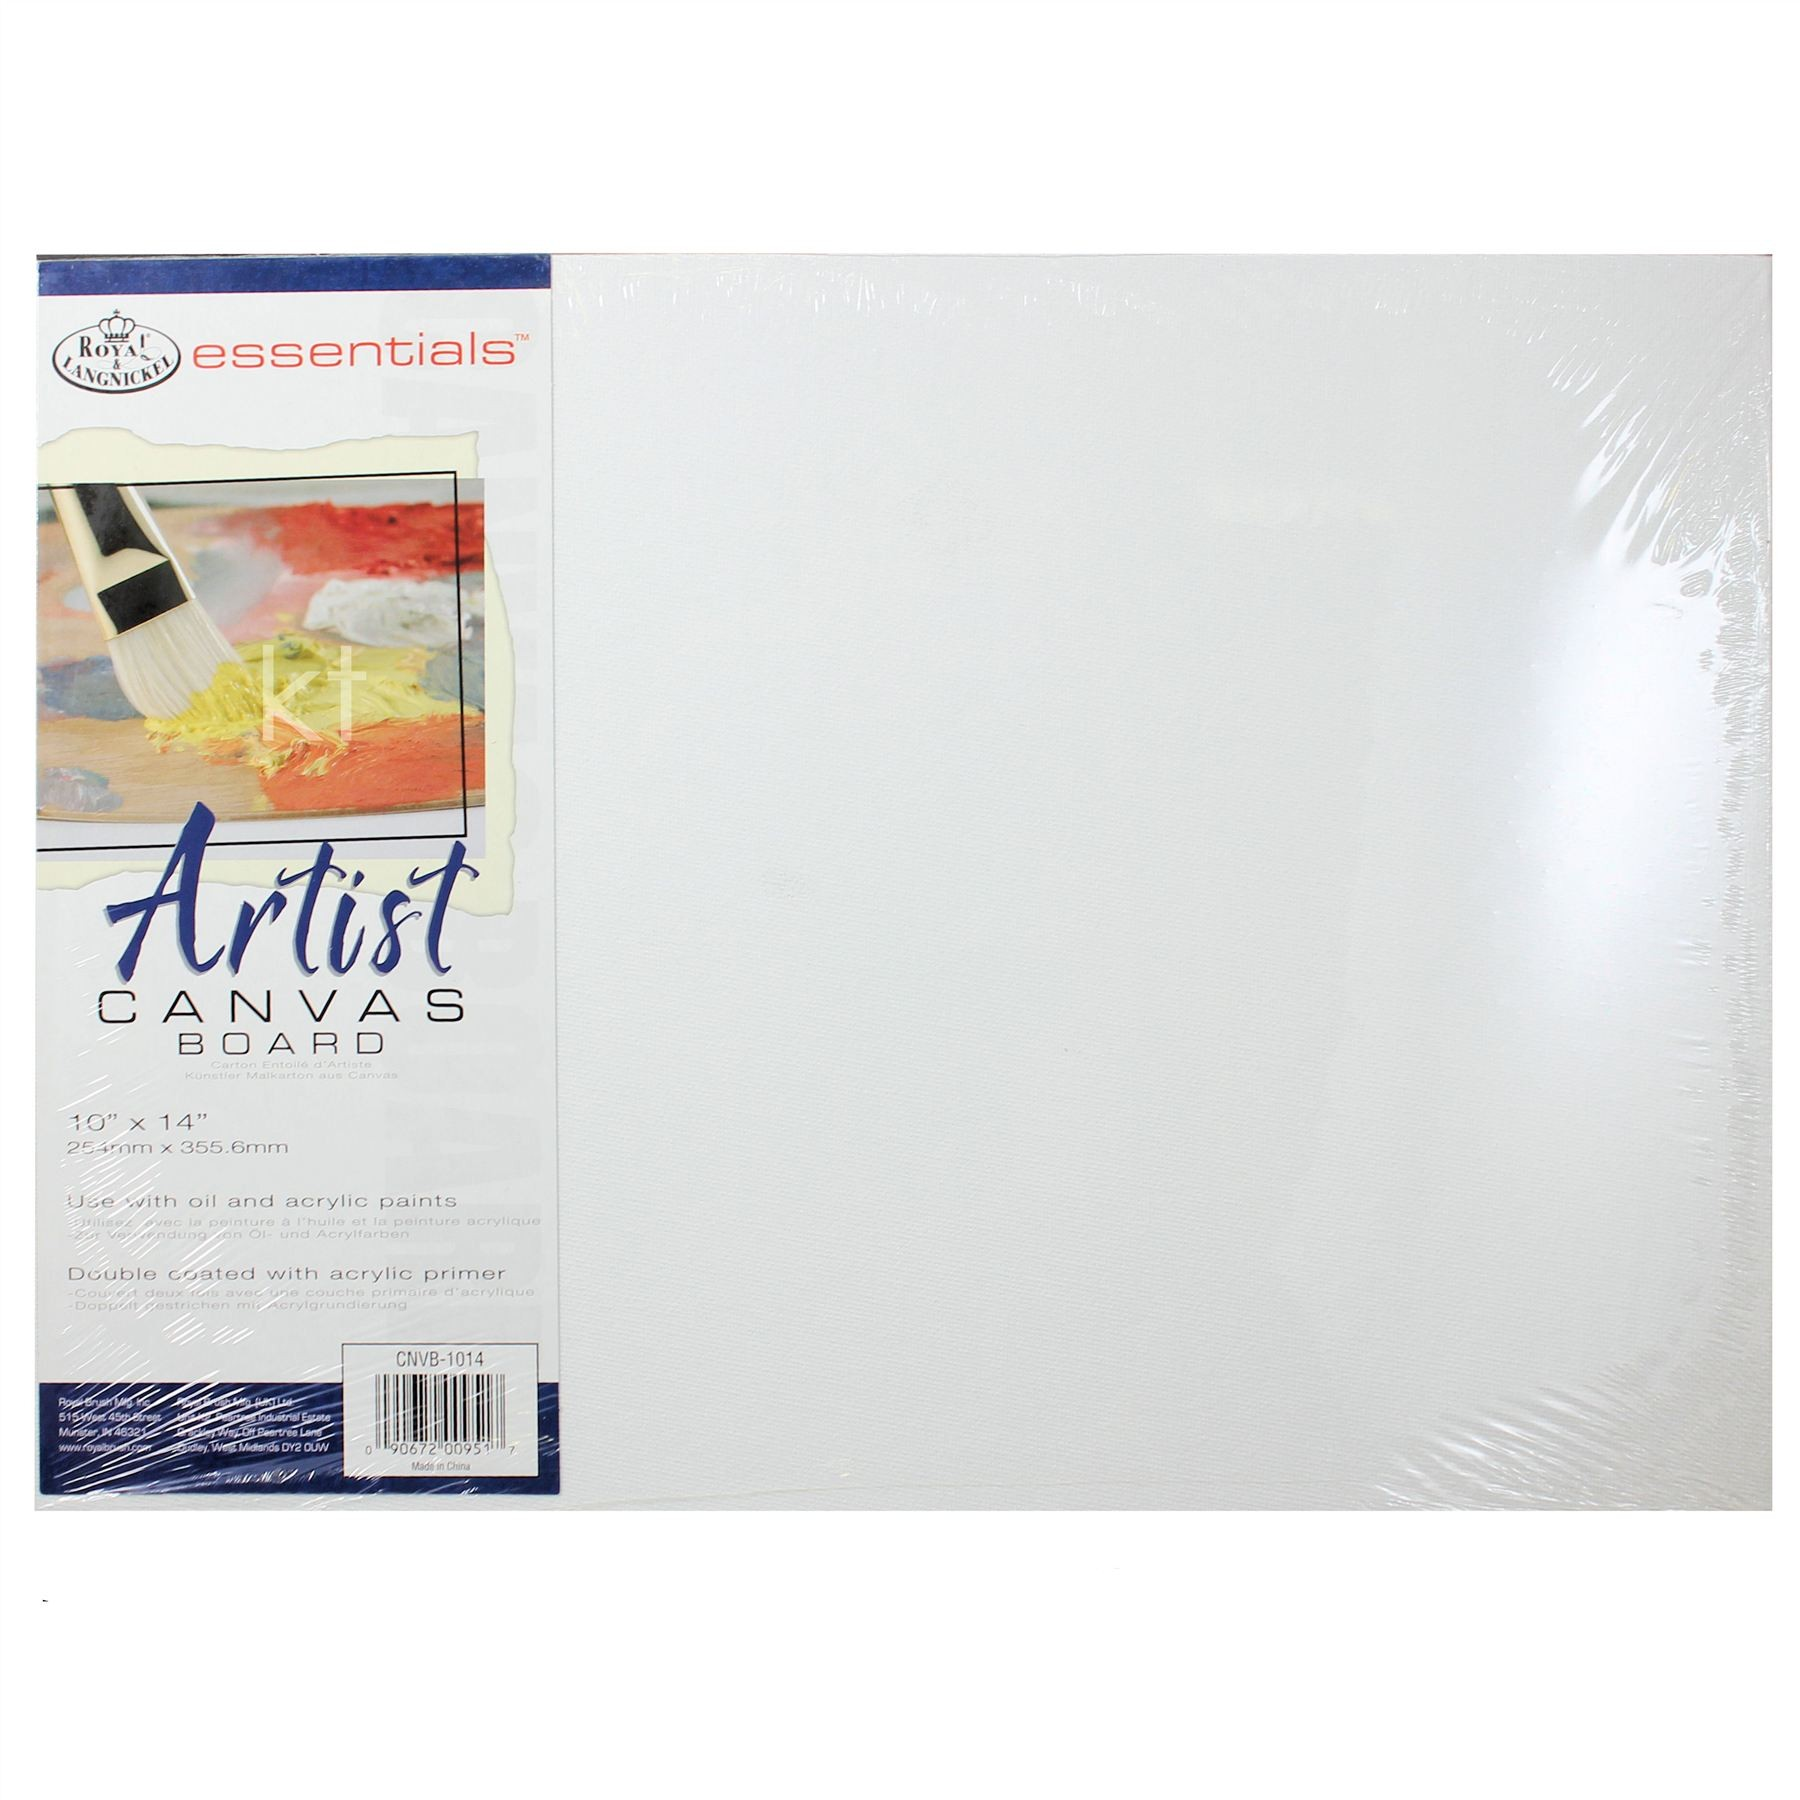 "Royal Essentials Artist Canvas Board 10"" x 14"""